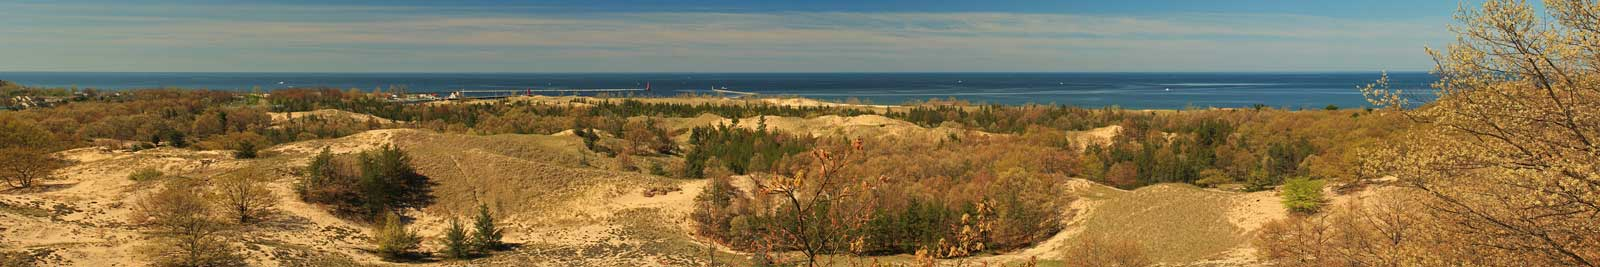 18-muskegon-state-park-pano